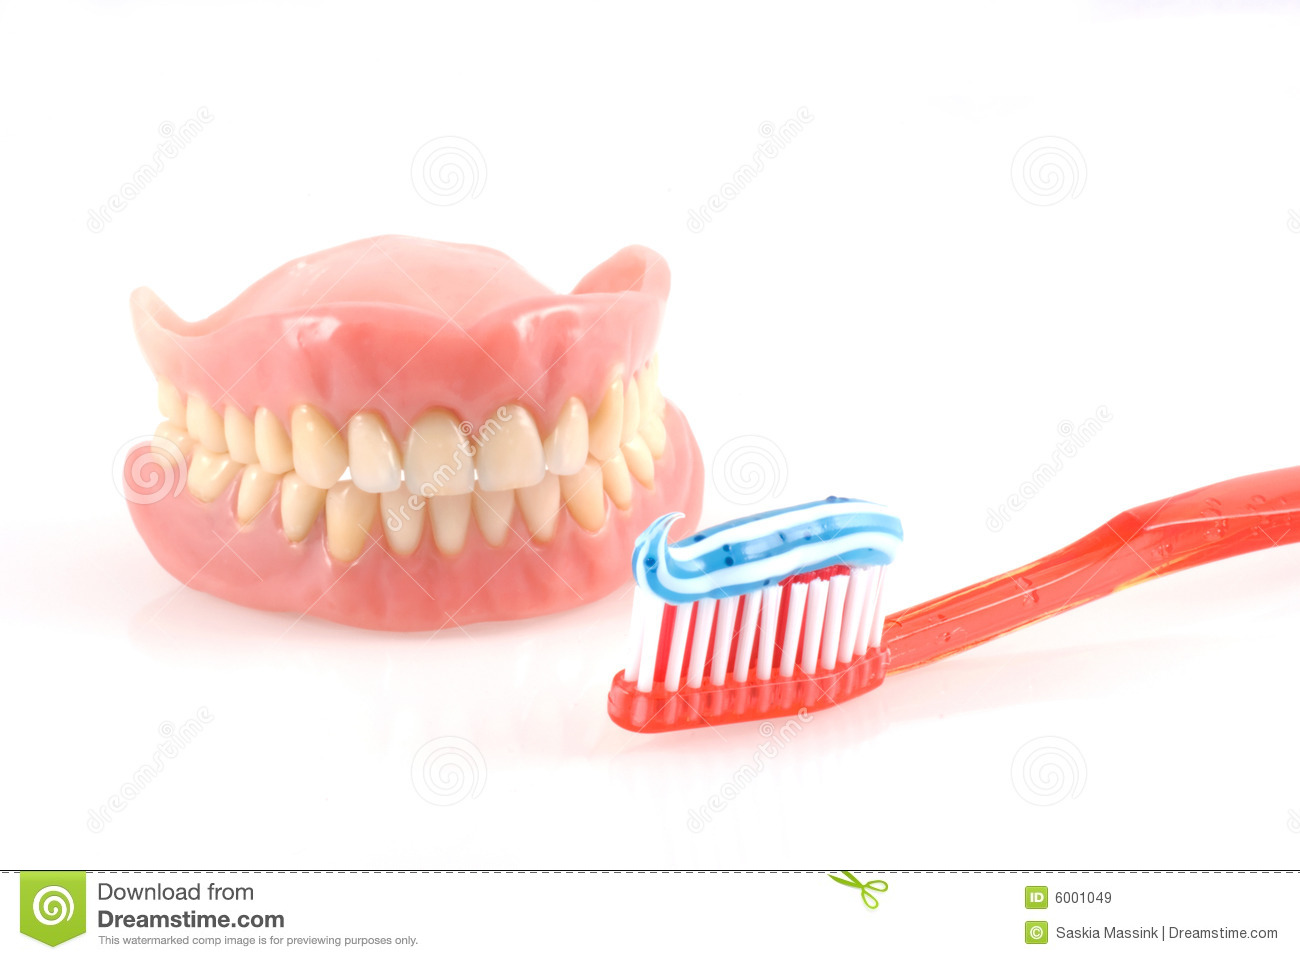 dental-care-6001049.jpg